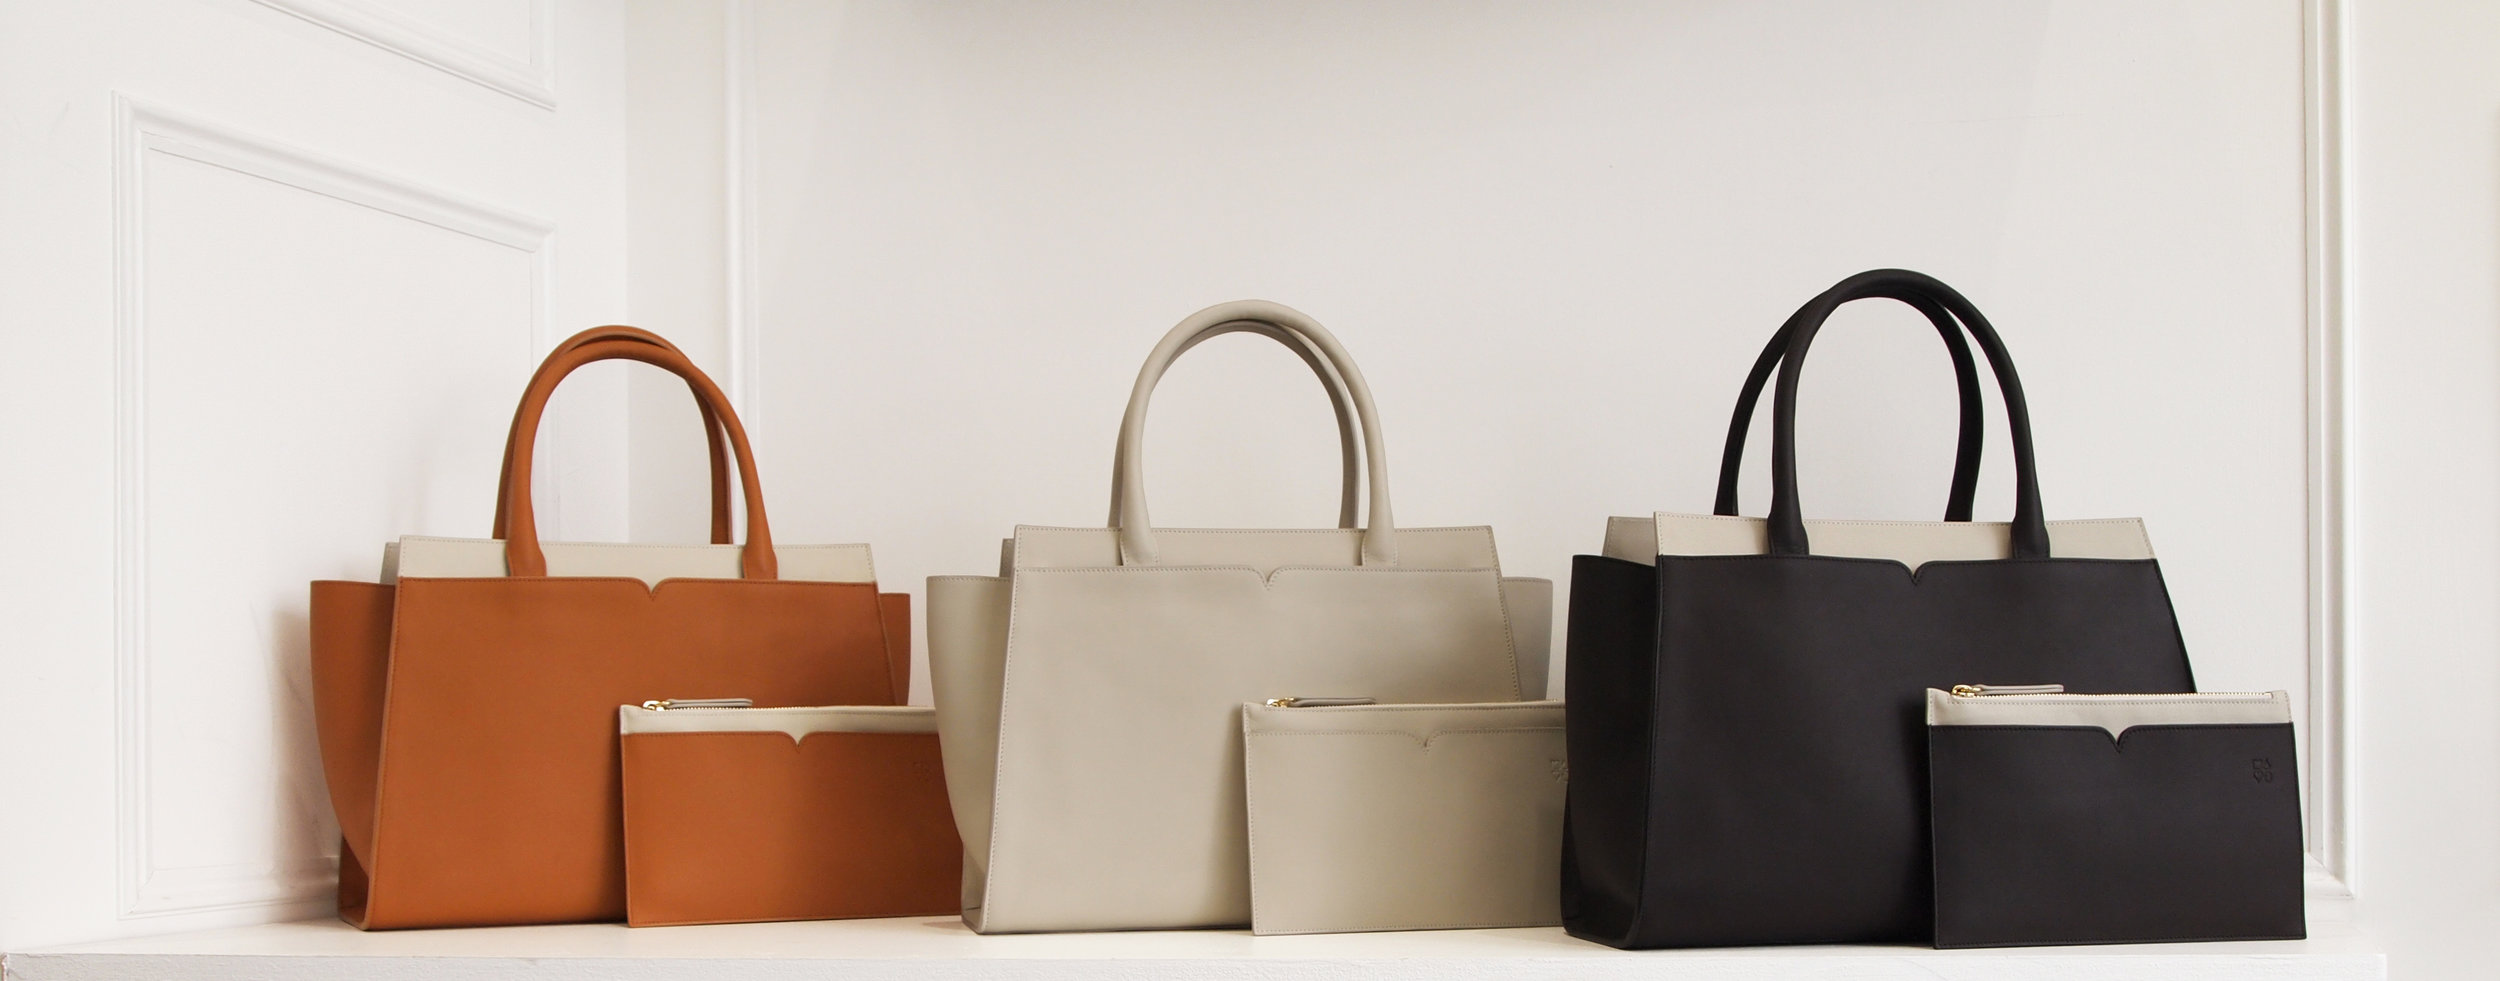 Handbags in a row.jpg